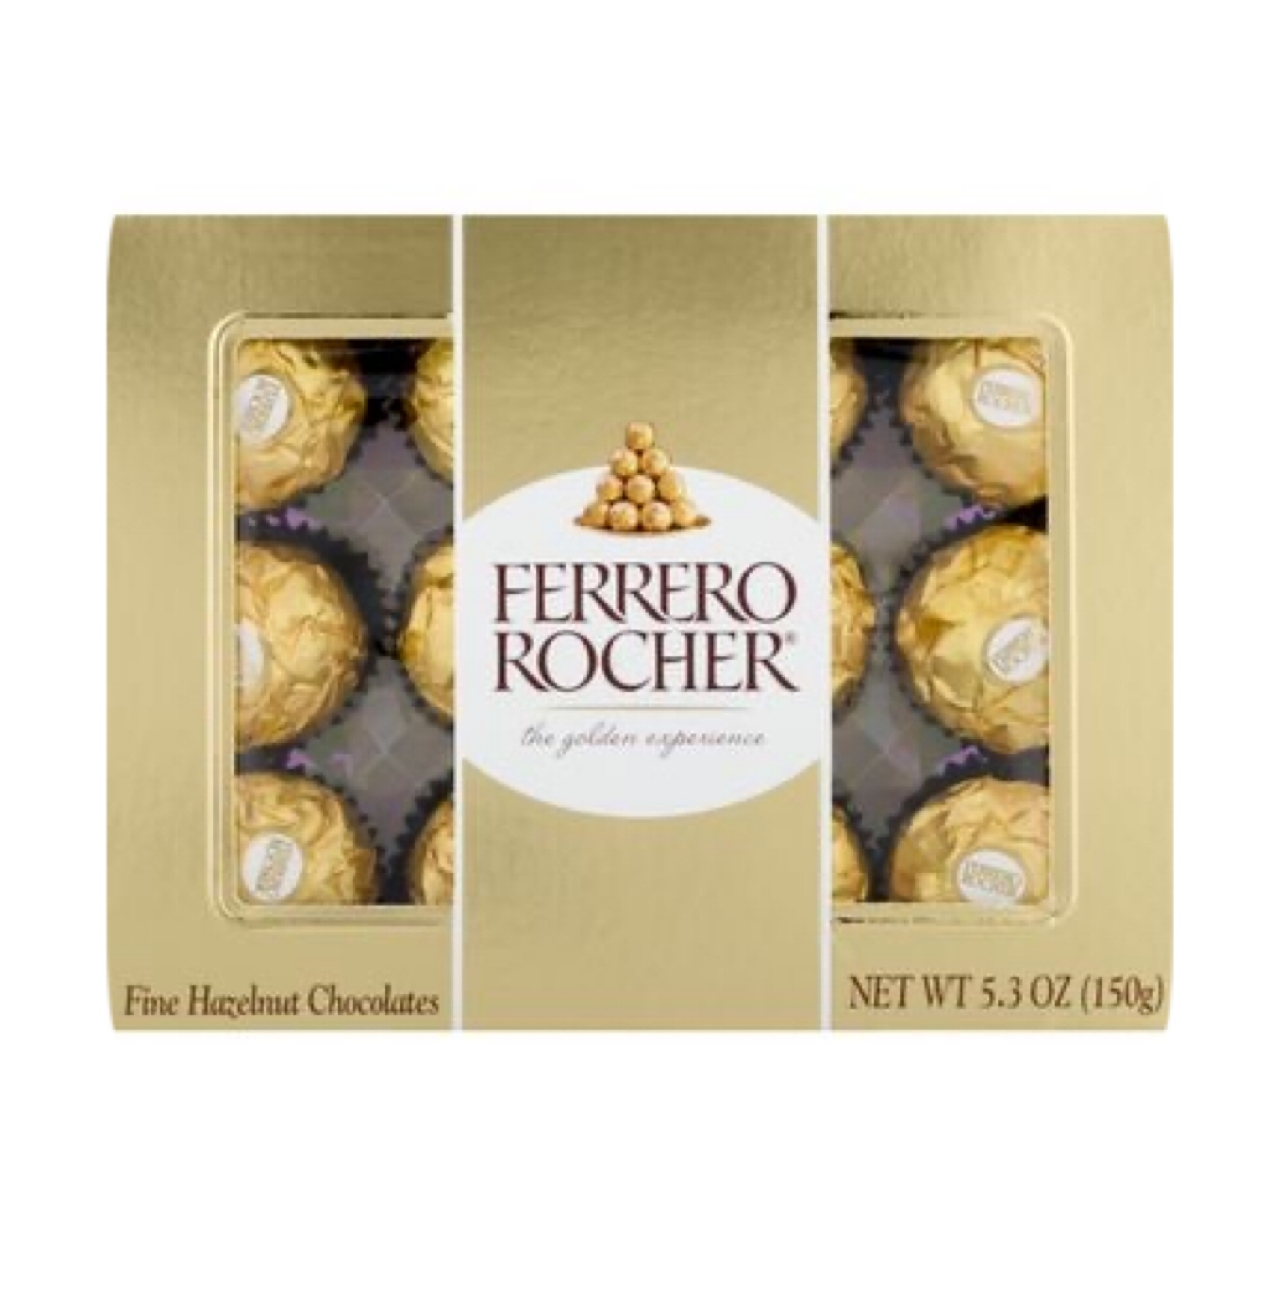 Doz Ferrero Rocher chocolate